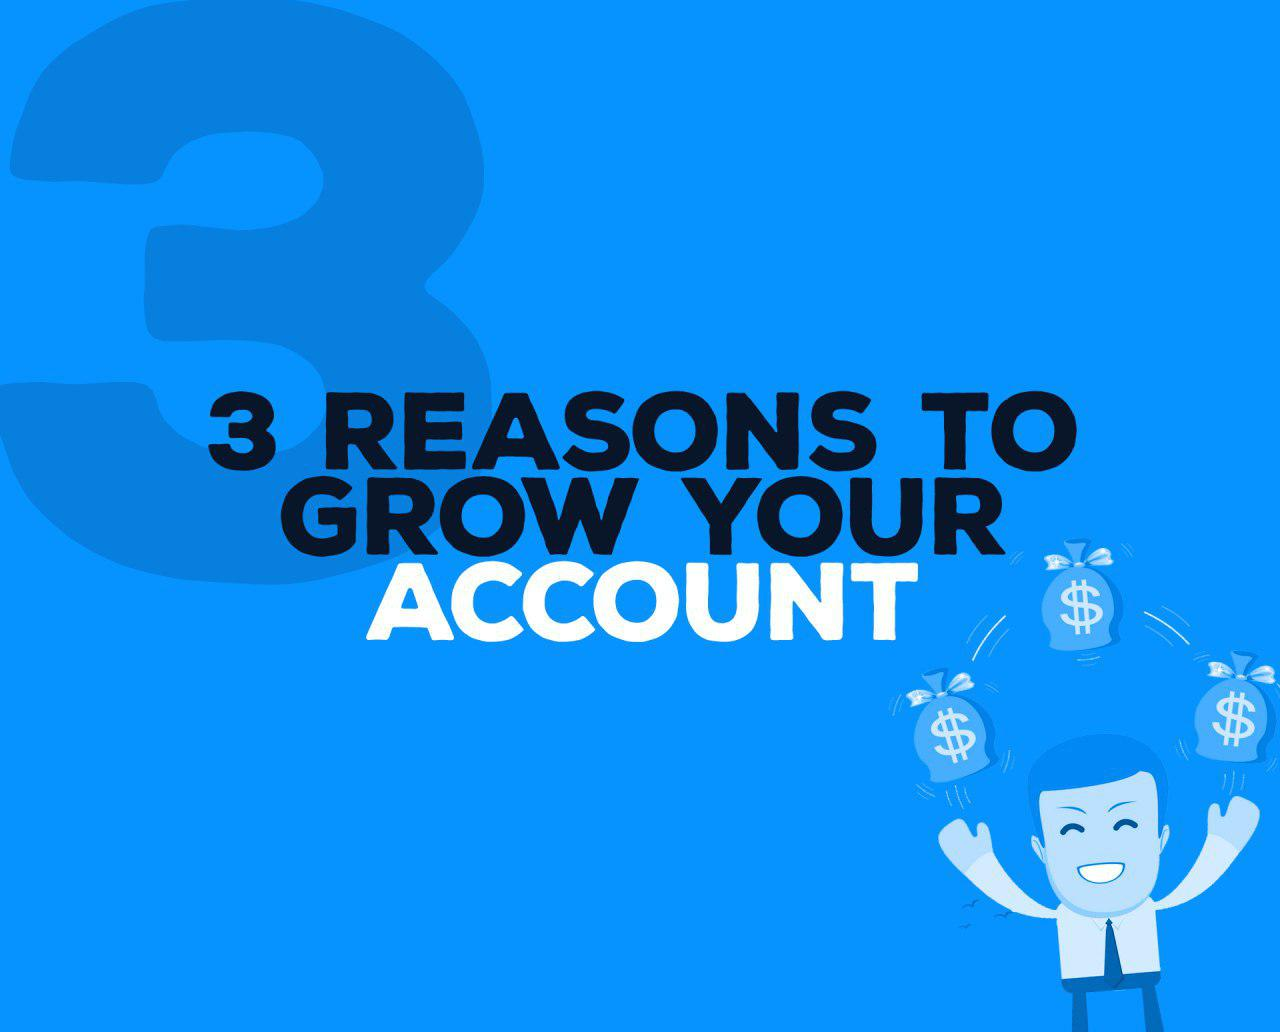 3 REASONS TO GROW YOUR ACCOUNT